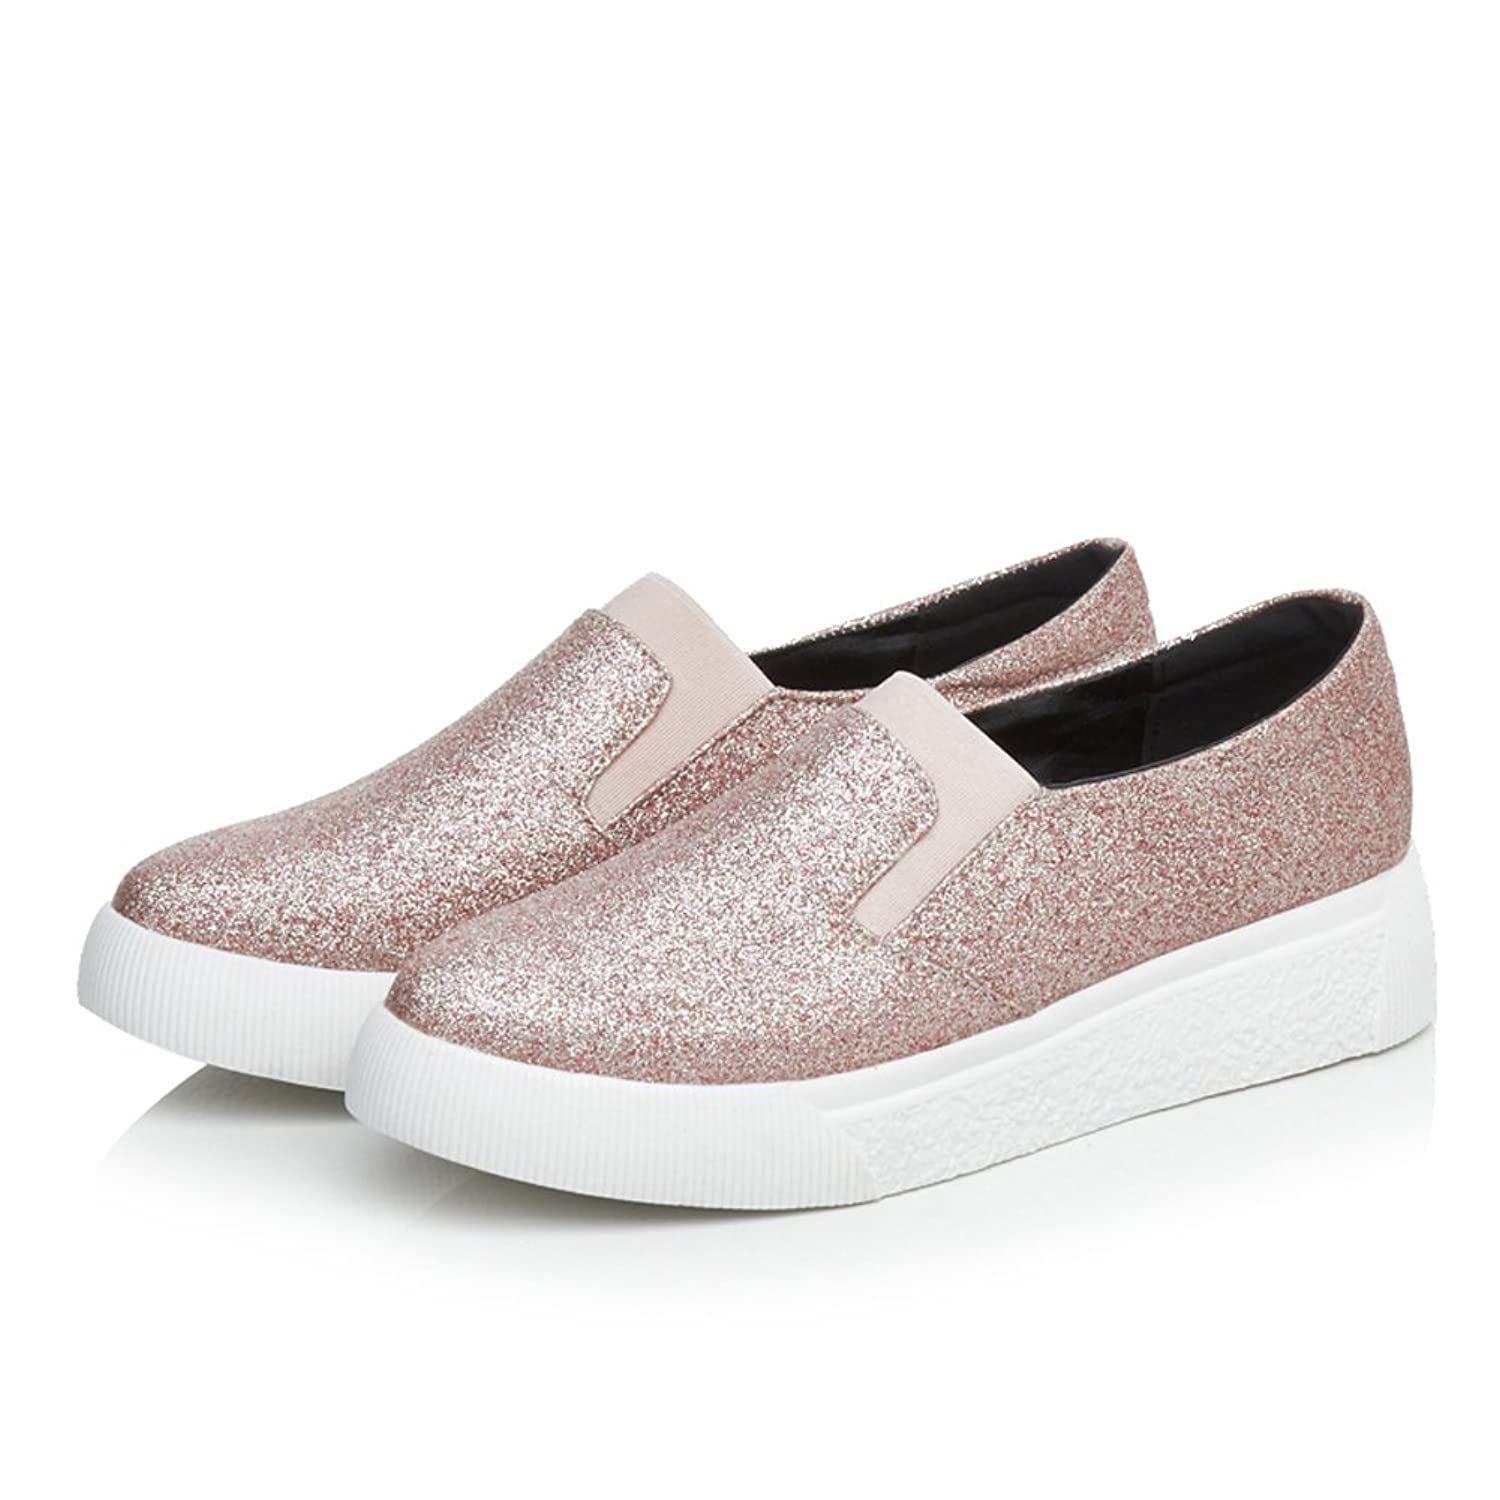 Women Glitter Fashion Sneakers Low-Top Loafers Sparkle Flats Casual Flatties DolphinGirl Shoes Prime